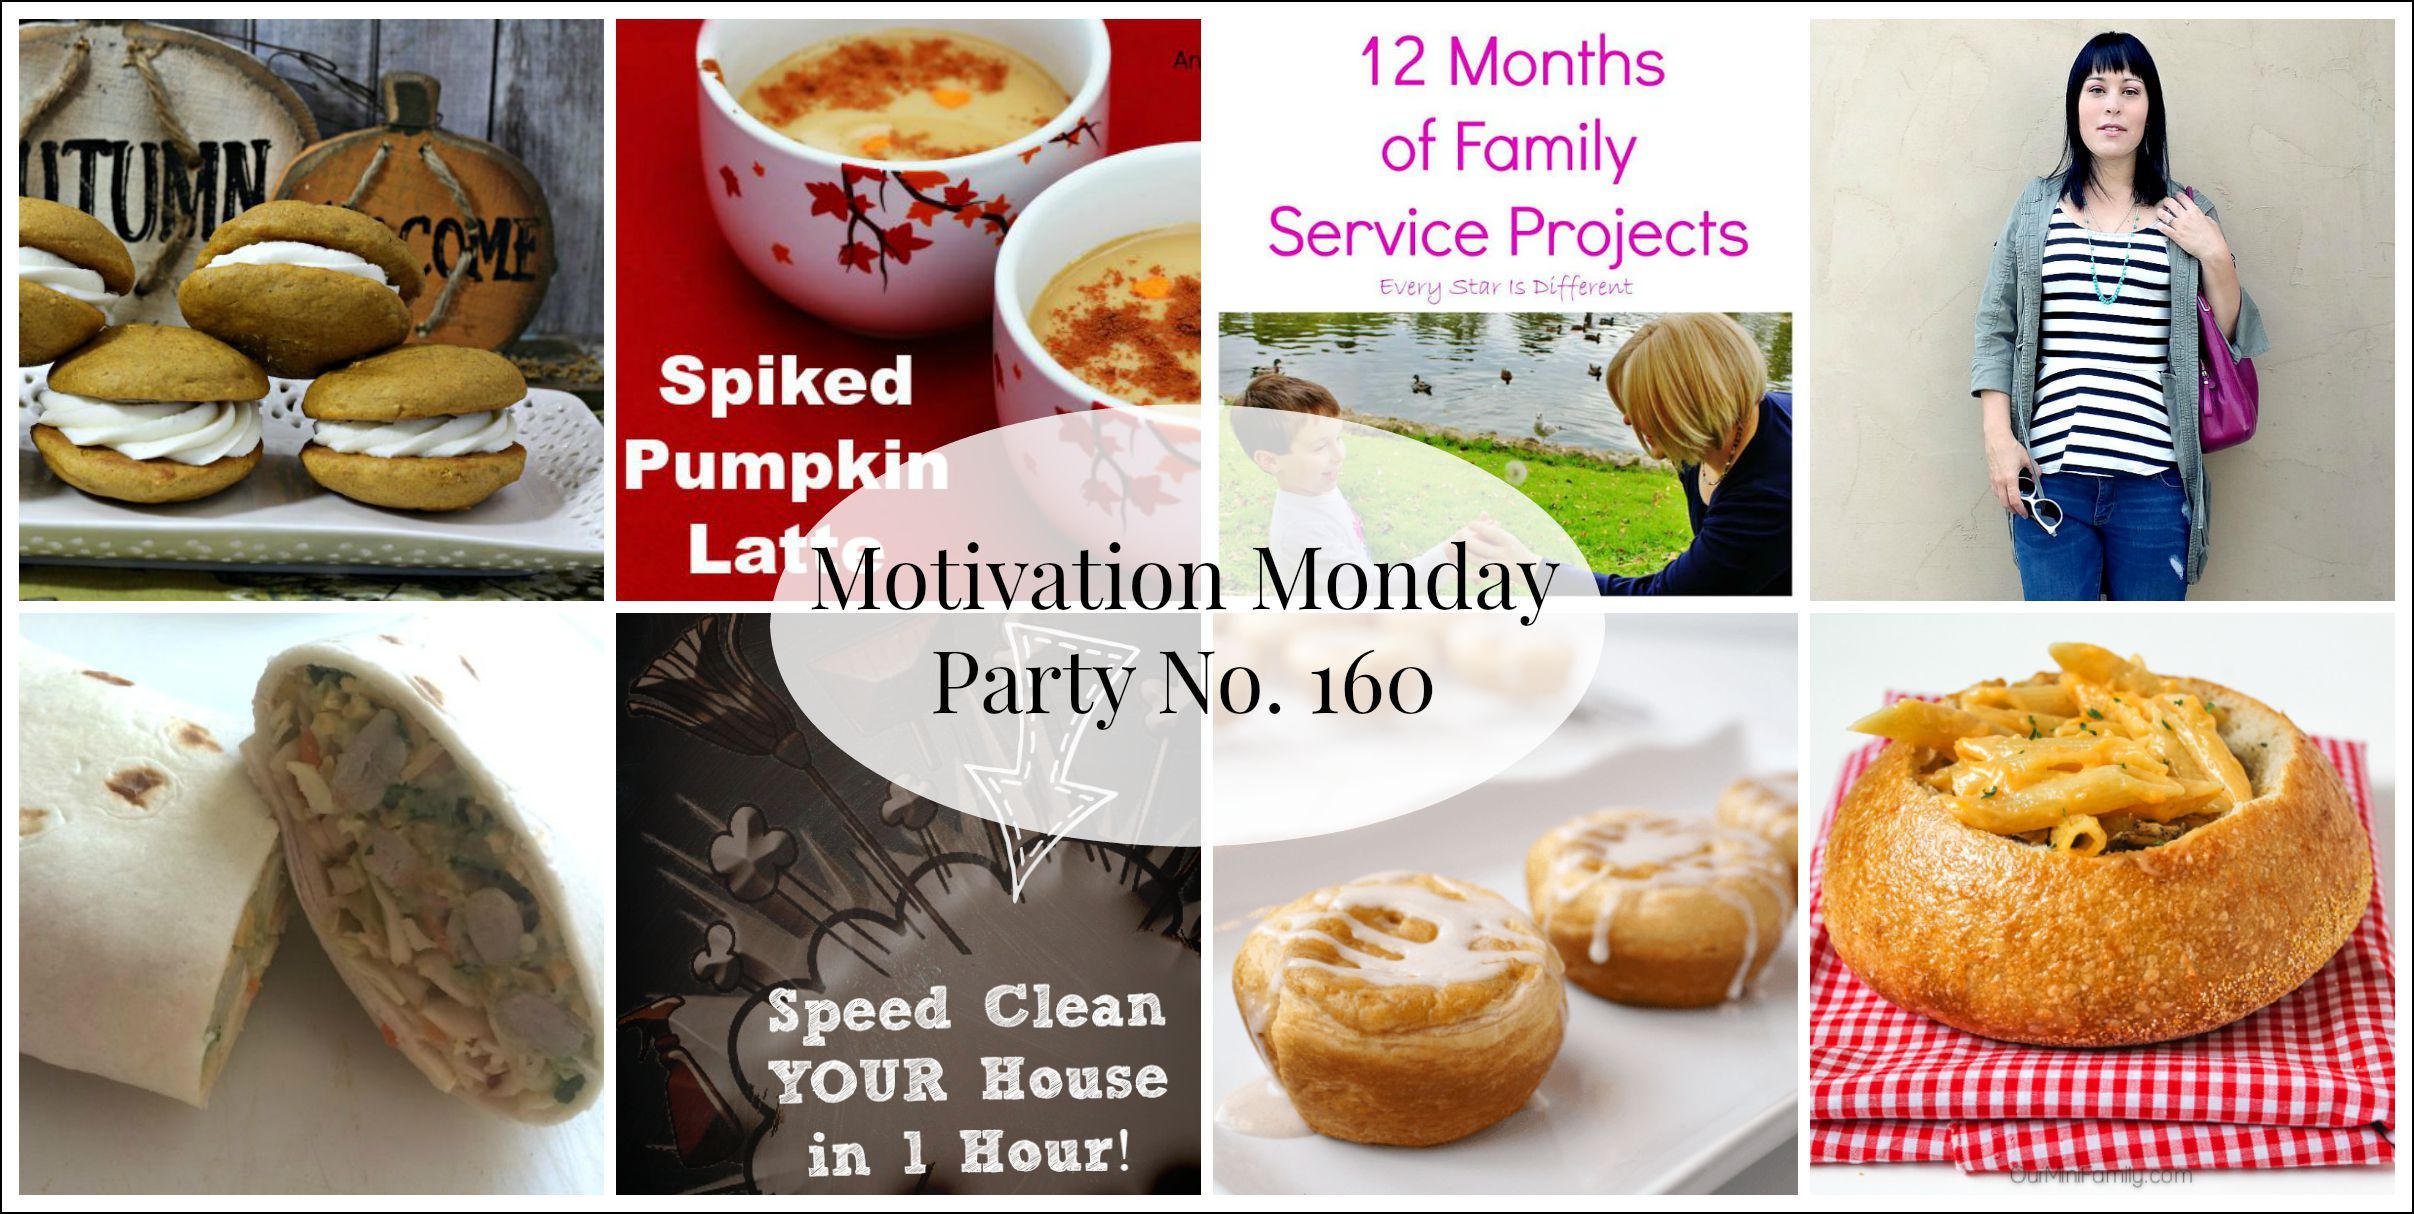 Motivation Monday Linky Party 160- Open Sunday 6:30 pm at www.alifeinbalance.net